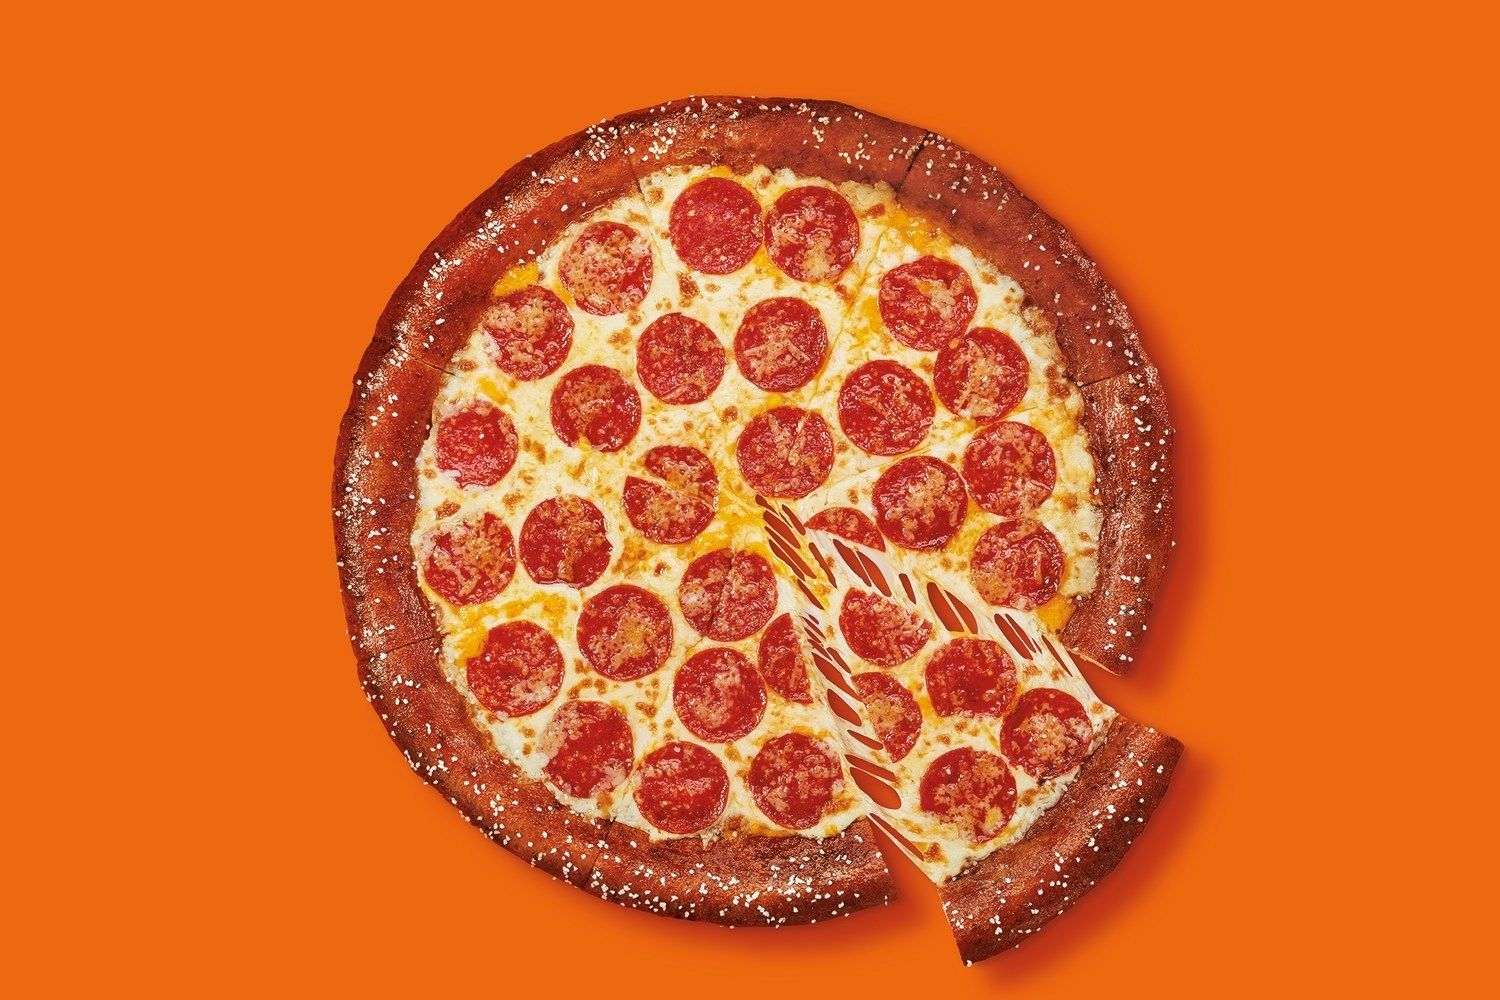 Little Caesars Answers Call From Enthusiastic Fans And Brings Back Pretzel Crust Pizza